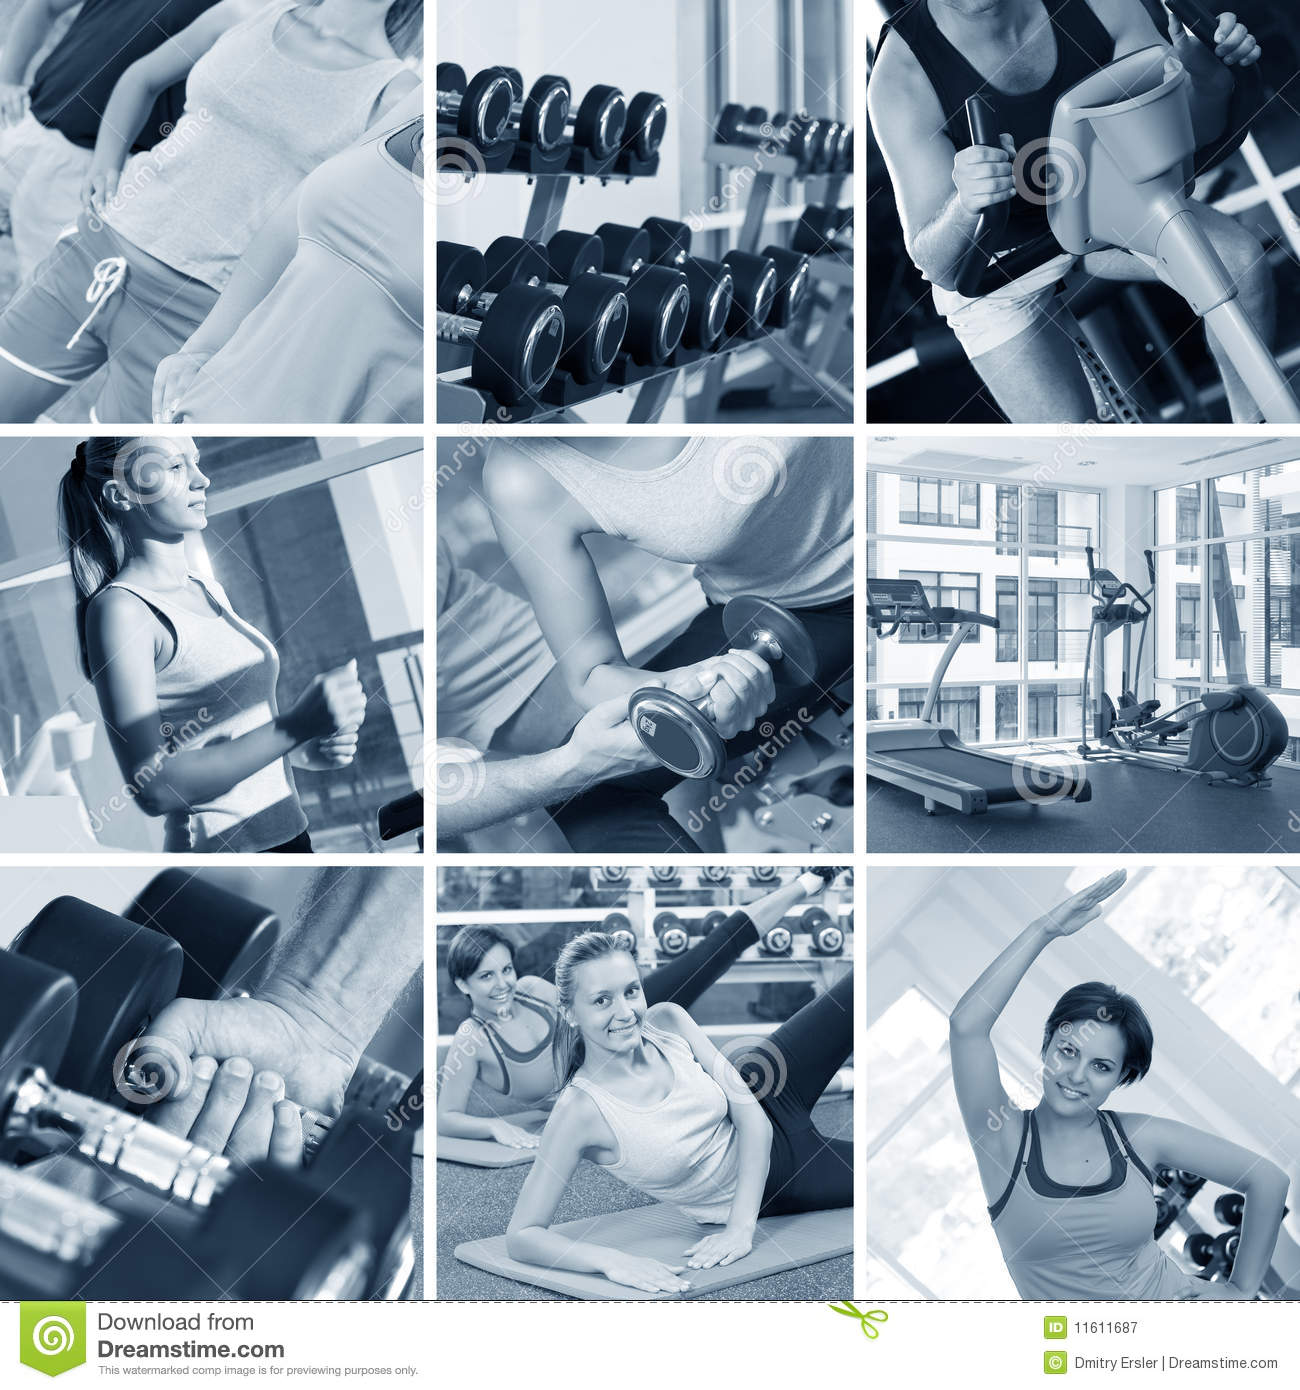 Gym Collage Royalty Free Stock Photography - Image: 11611687